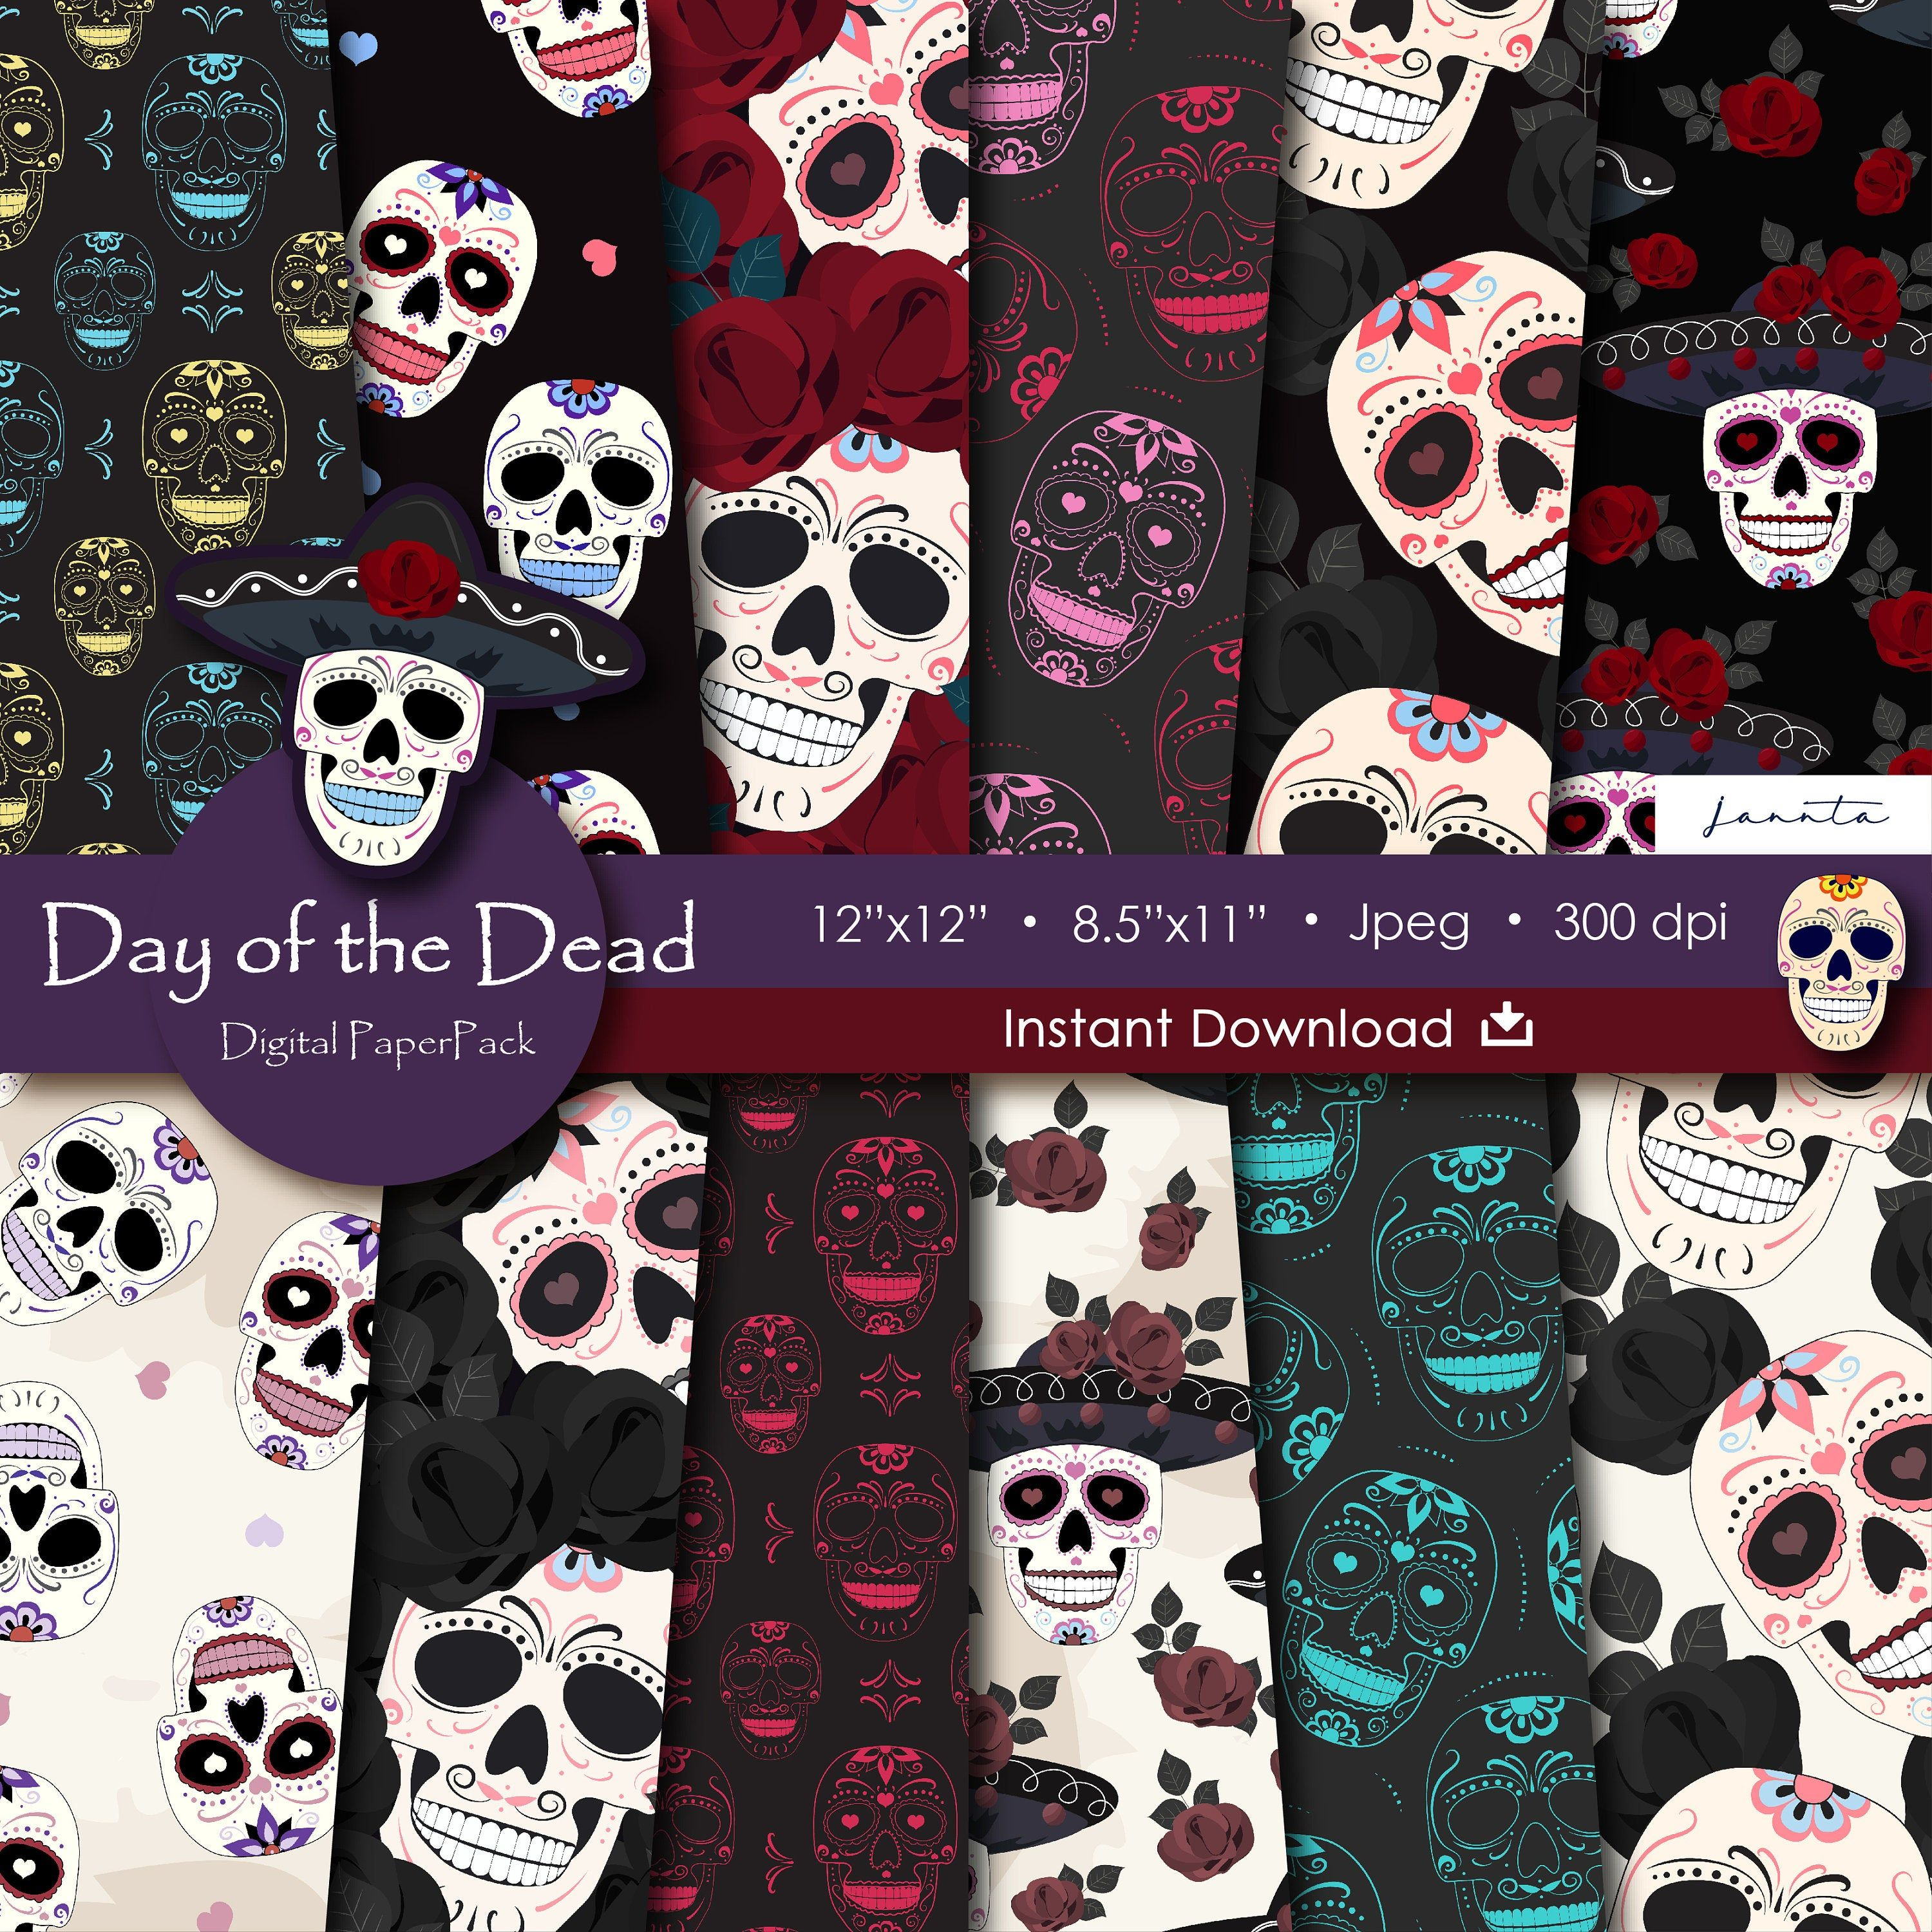 Skull digital paper day of the dead scrapbook paper halloween pattern coco party halloween background commercial use D676